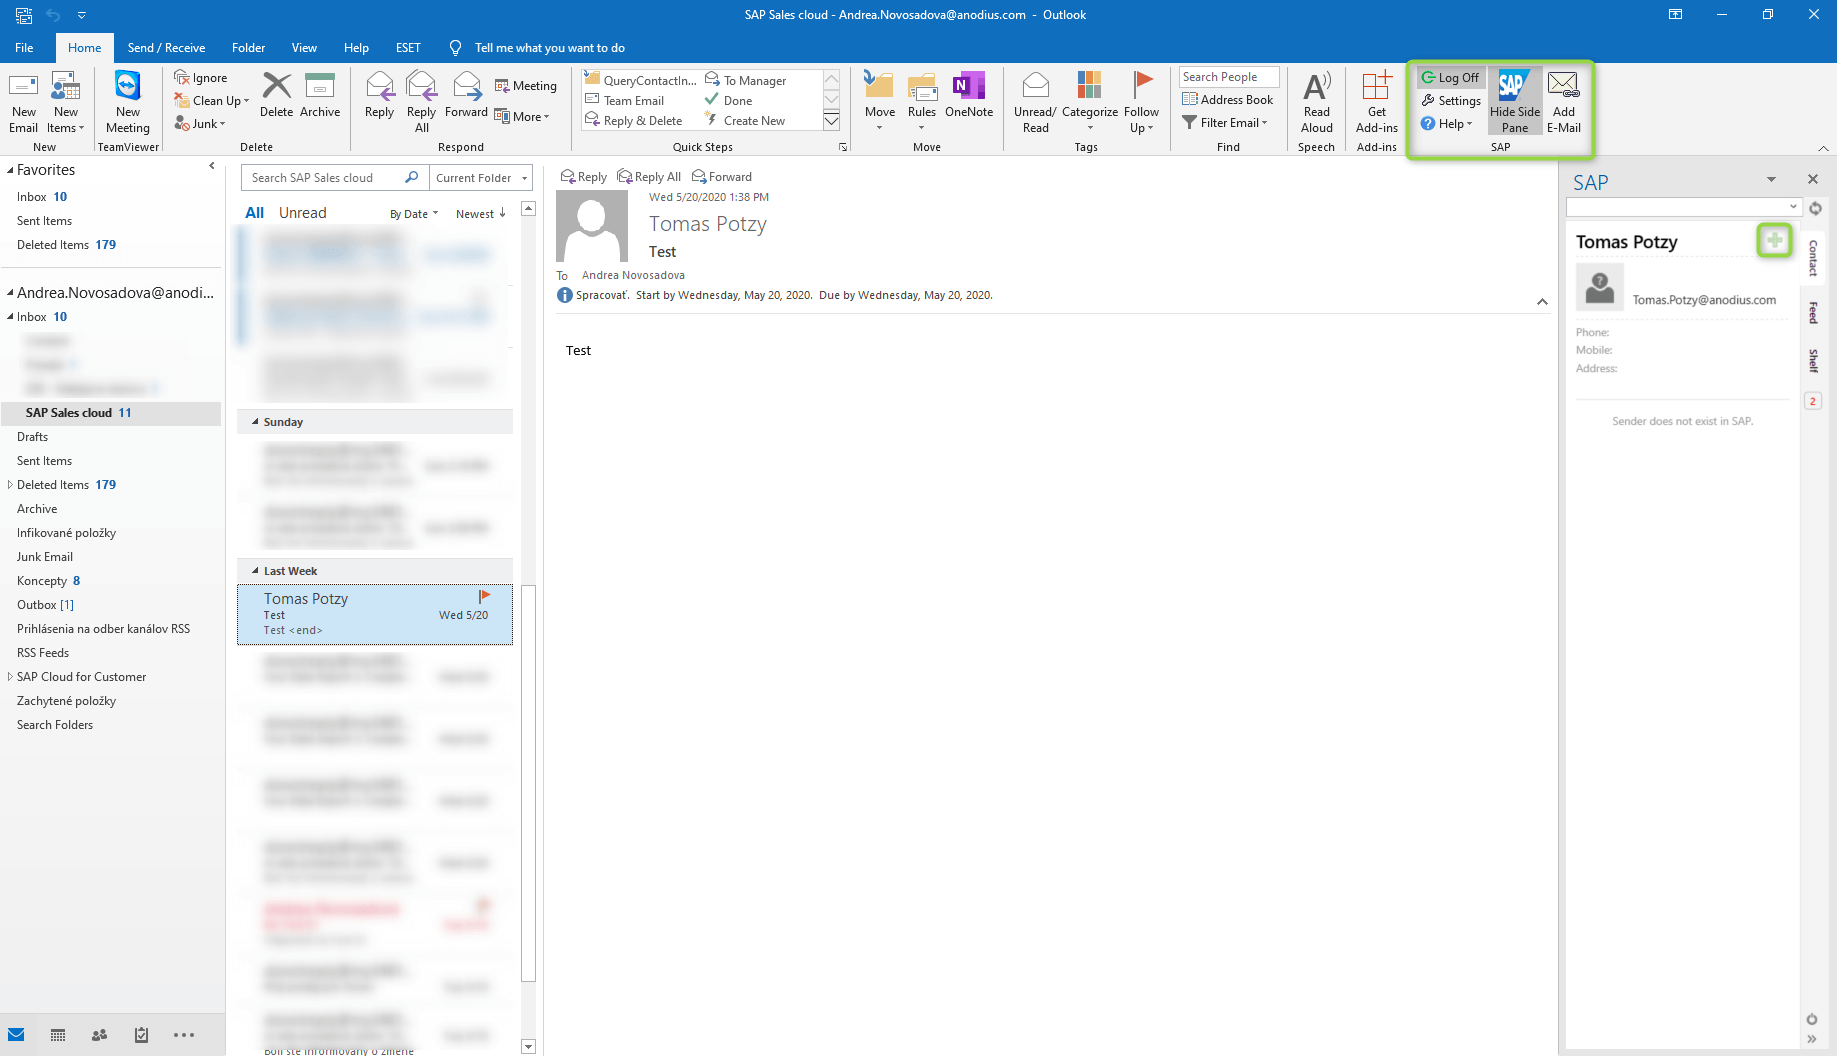 how-to-integrate-sap-c4c-with-ms-outlook